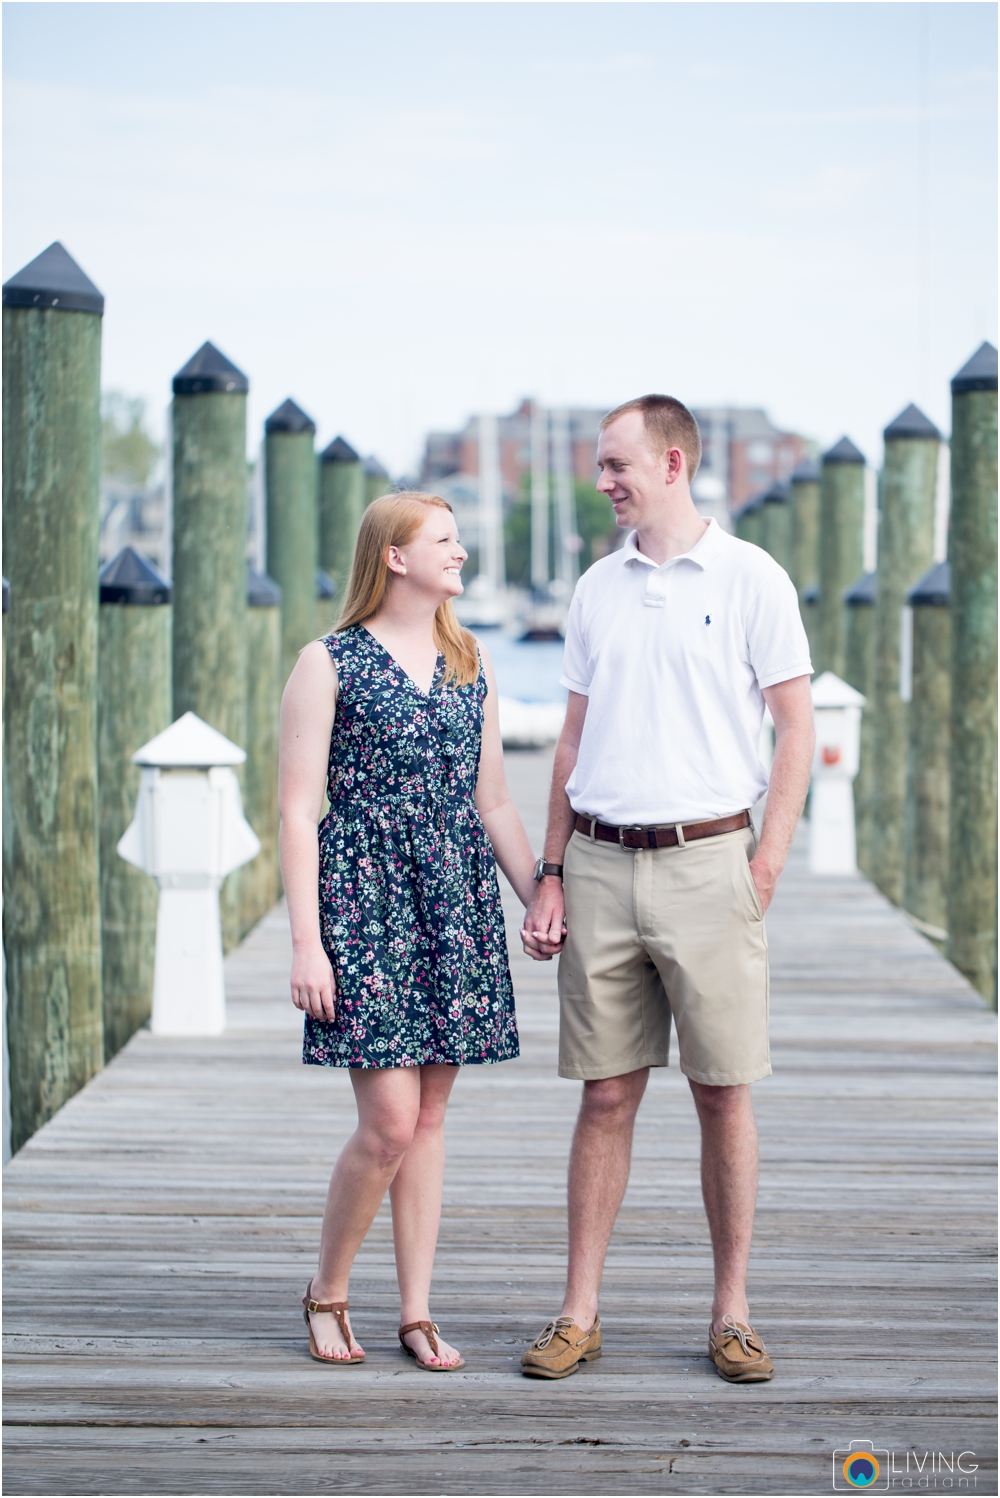 casey-clark-engaged-annapolis-downtown-naval-academy-engagement-session-living-radiant-photography-maggie-patrick-nolan-outdoor-water-boats_0003.jpg